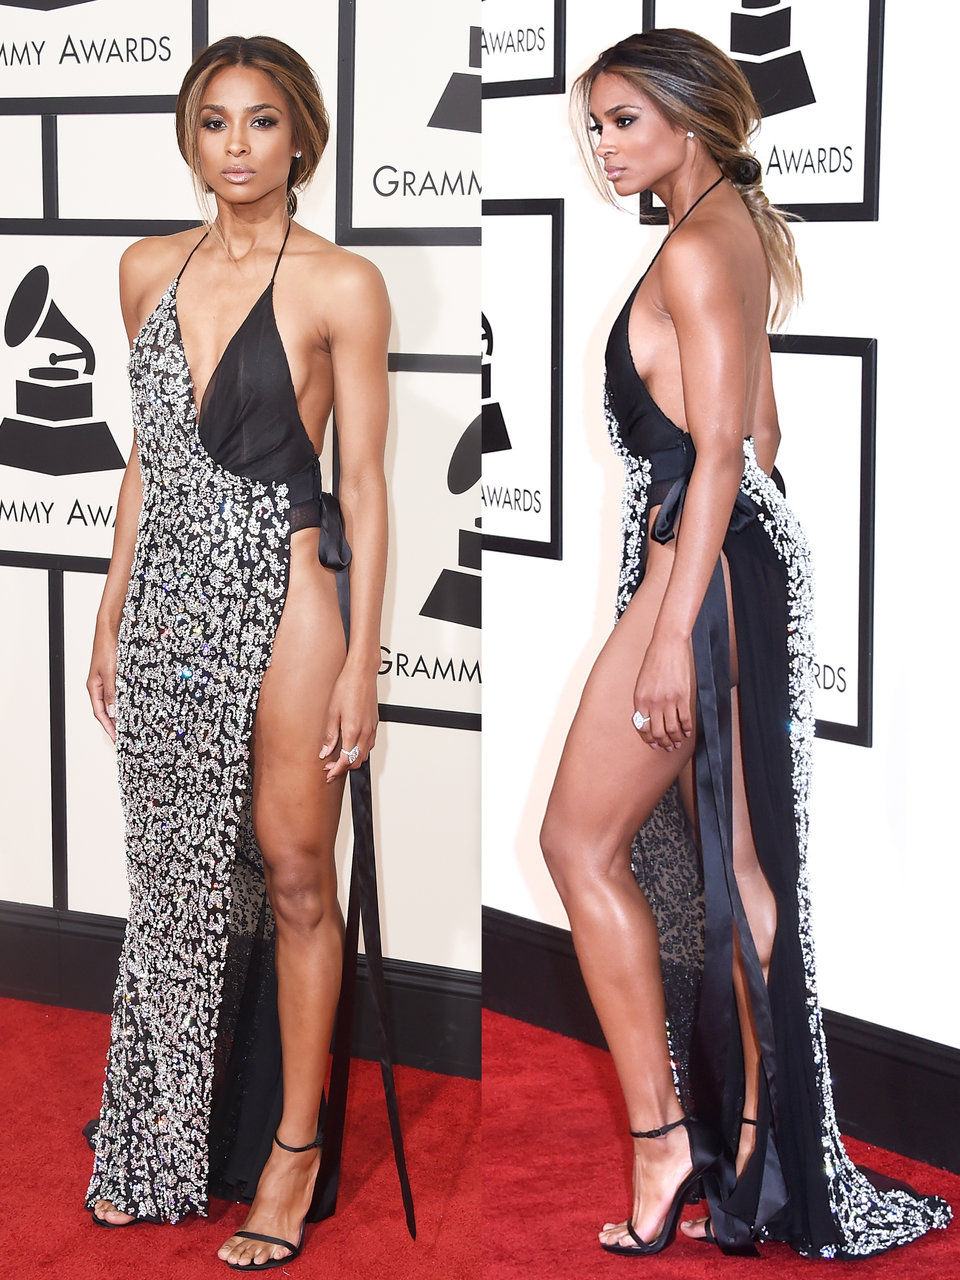 ciara also wore a dress with an extremely high slit up one side for the 2016 grammy awards